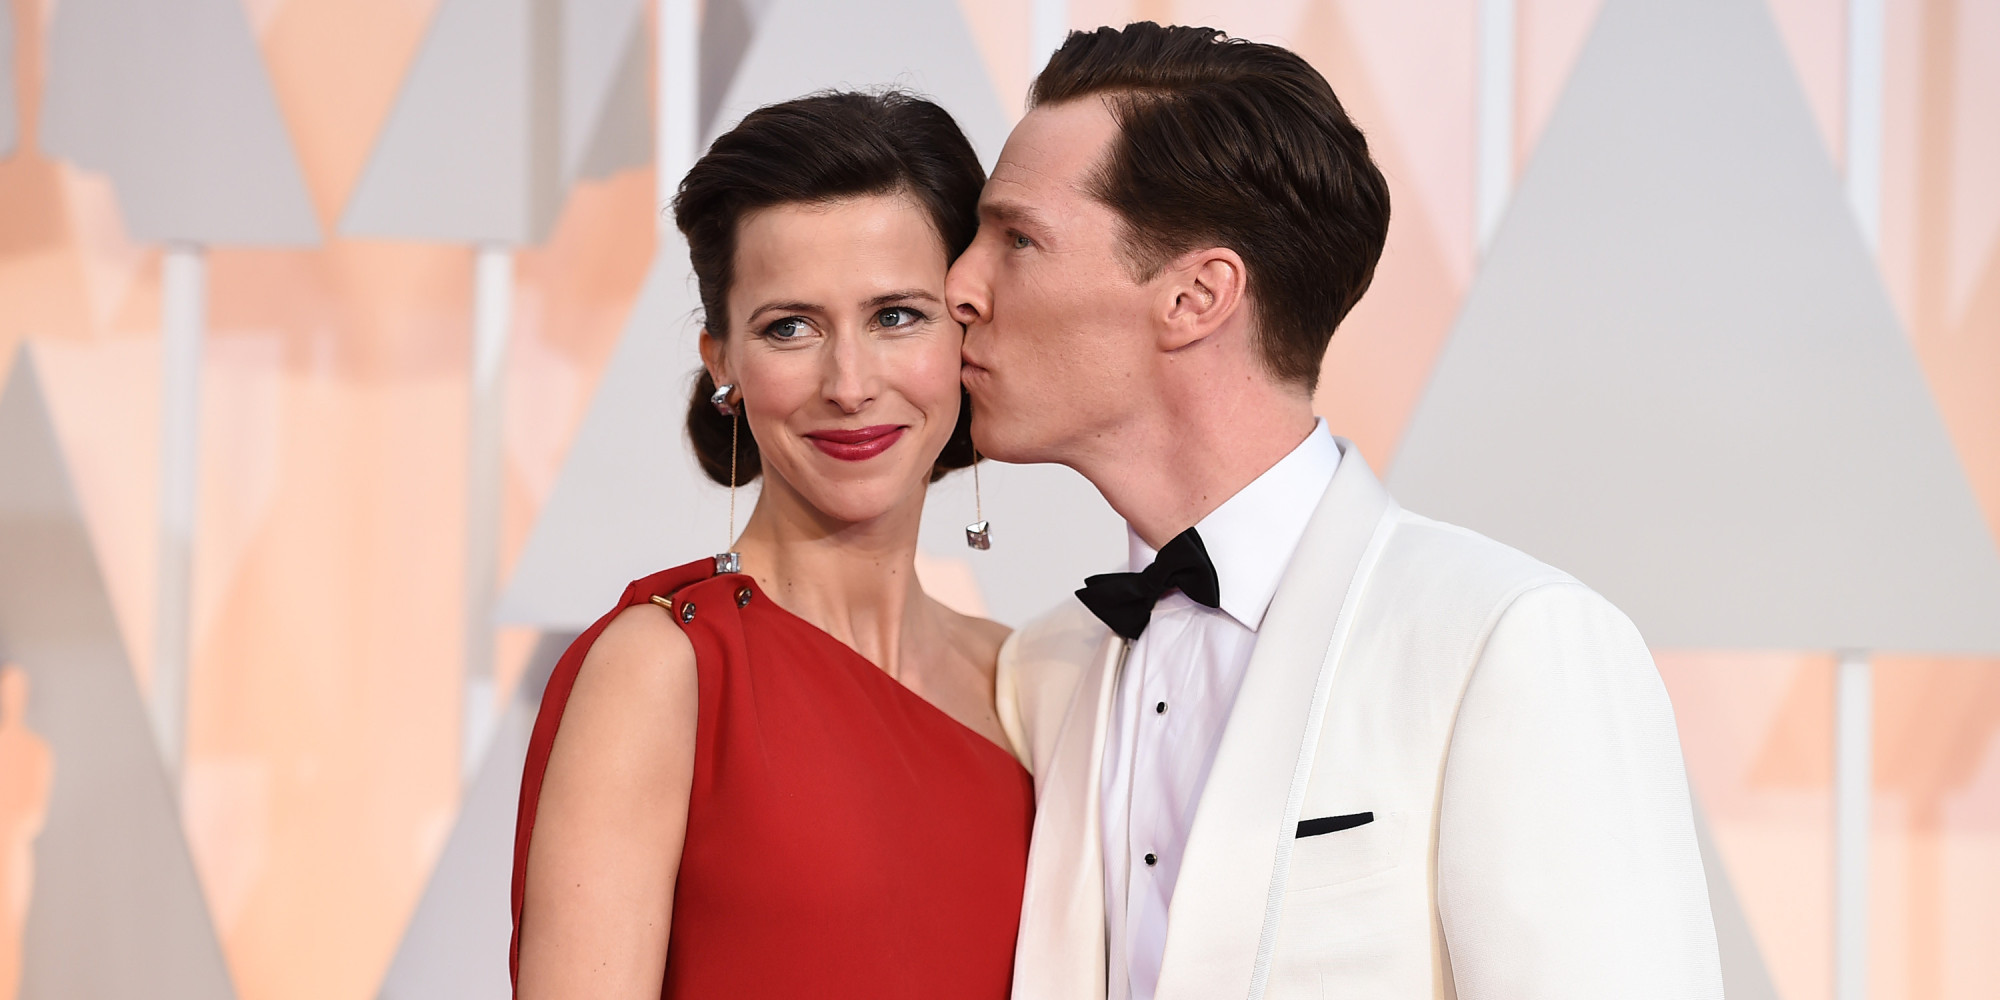 Newlyweds benedict cumberbatch and sophie hunter shine at the oscars